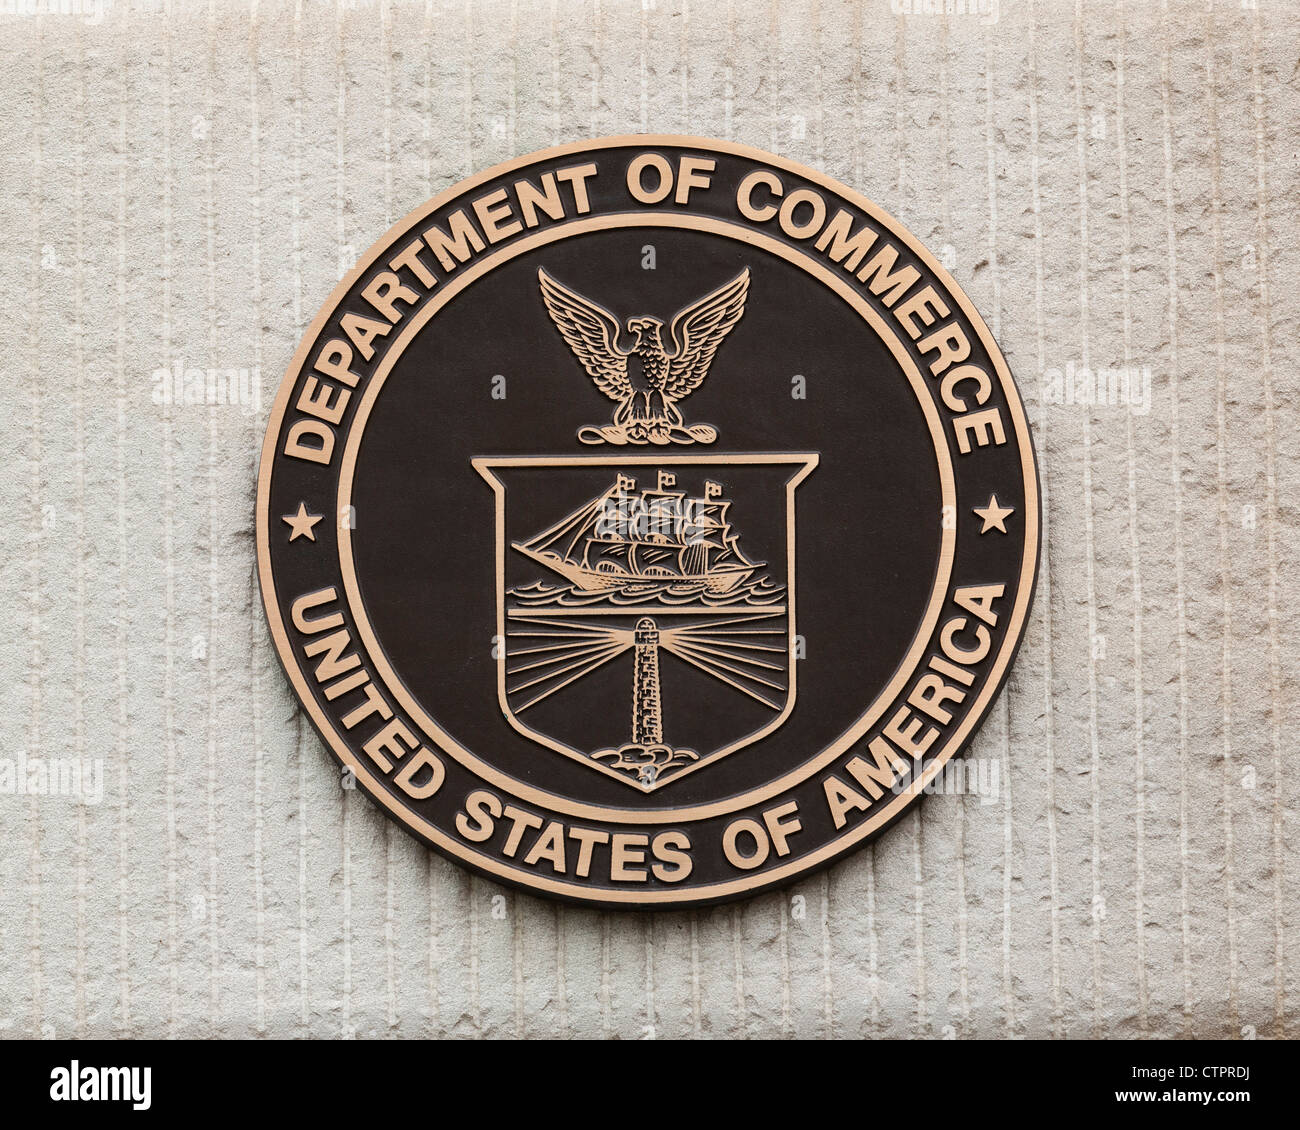 US Department of Commerce seal - Stock Image